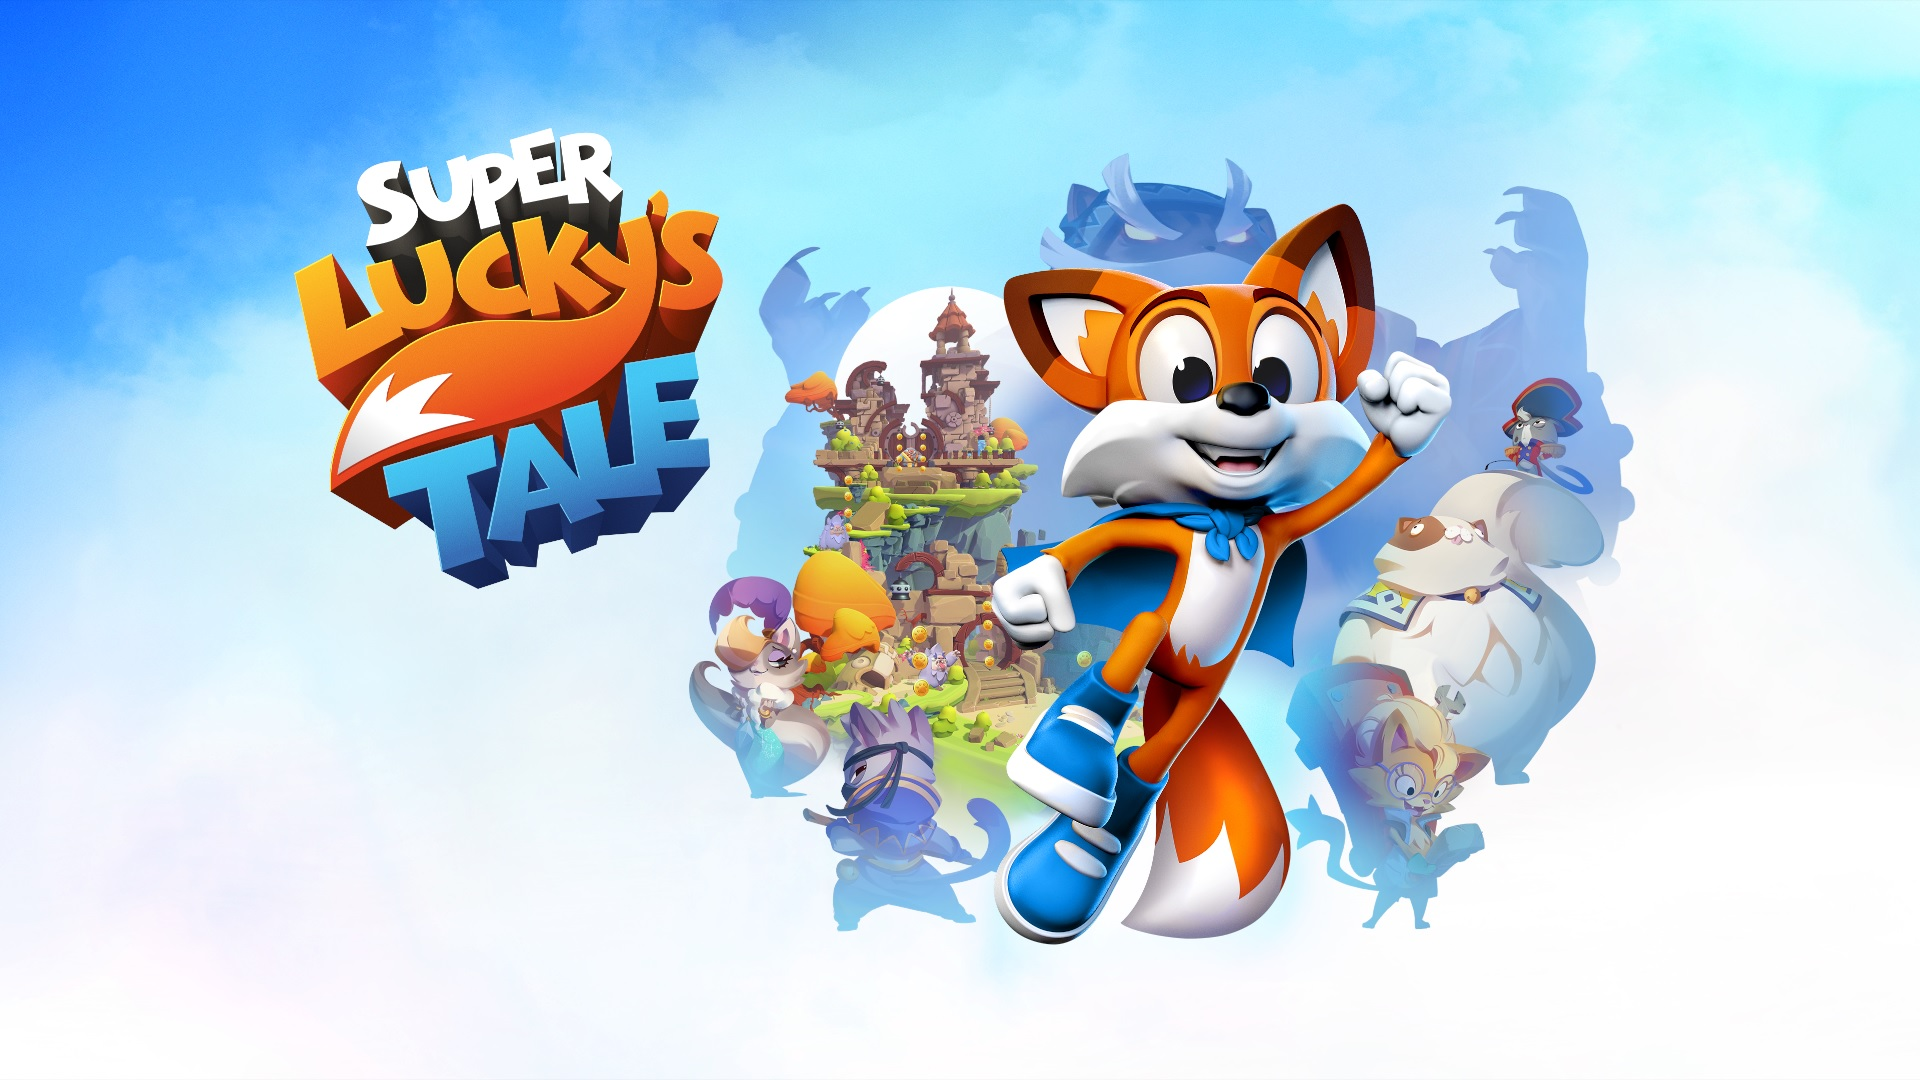 Problem with super lucky's tale e1ff4855-4732-4971-9883-92df98d573a9?upload=true.jpg